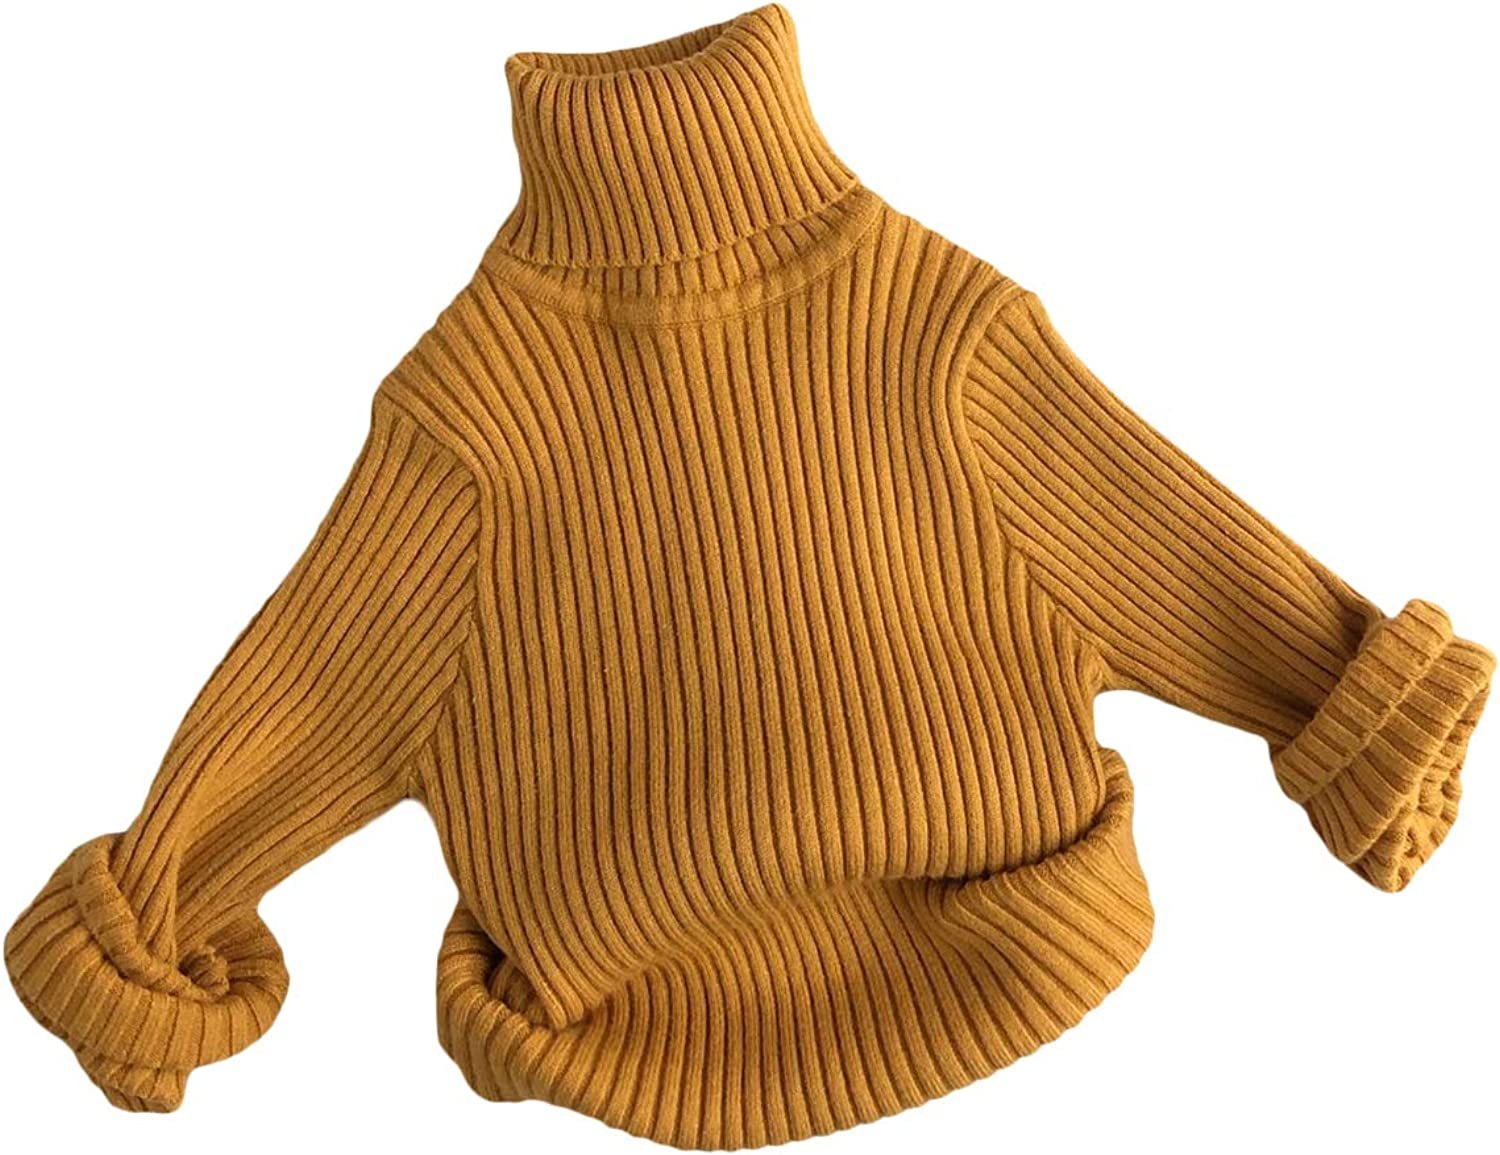 Toddler Boy Girl Fall Clothes Solid Turtleneck Knit Long Sleeve Sweater Pullover Unisex Kid Winter Warm Tops Oufit